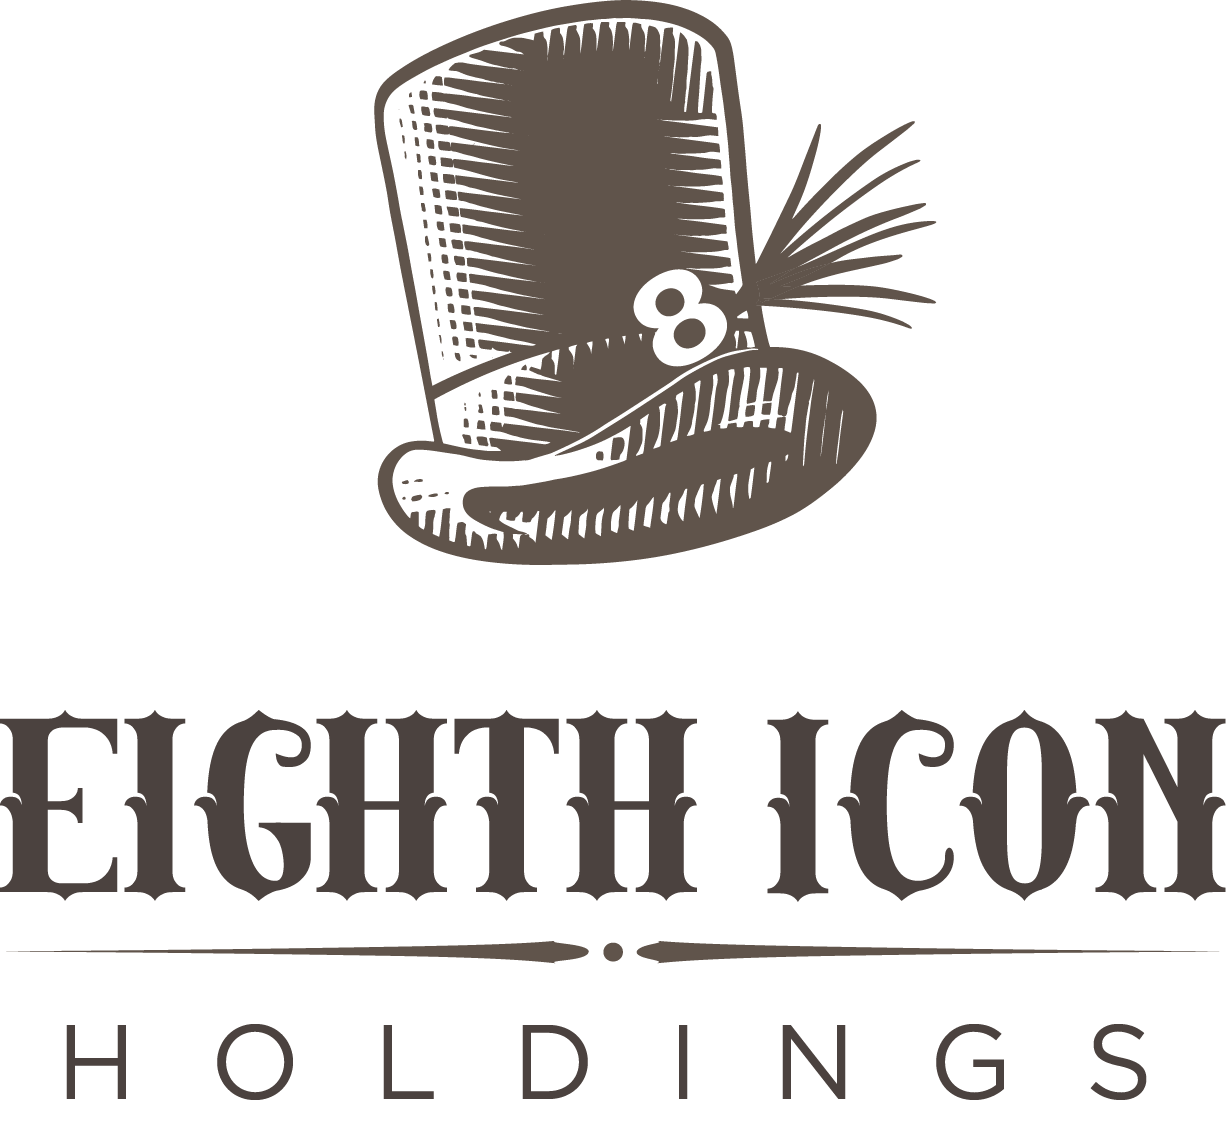 Tom Harrison Joins Eighth Icon Holdings Inc. Board of Directors